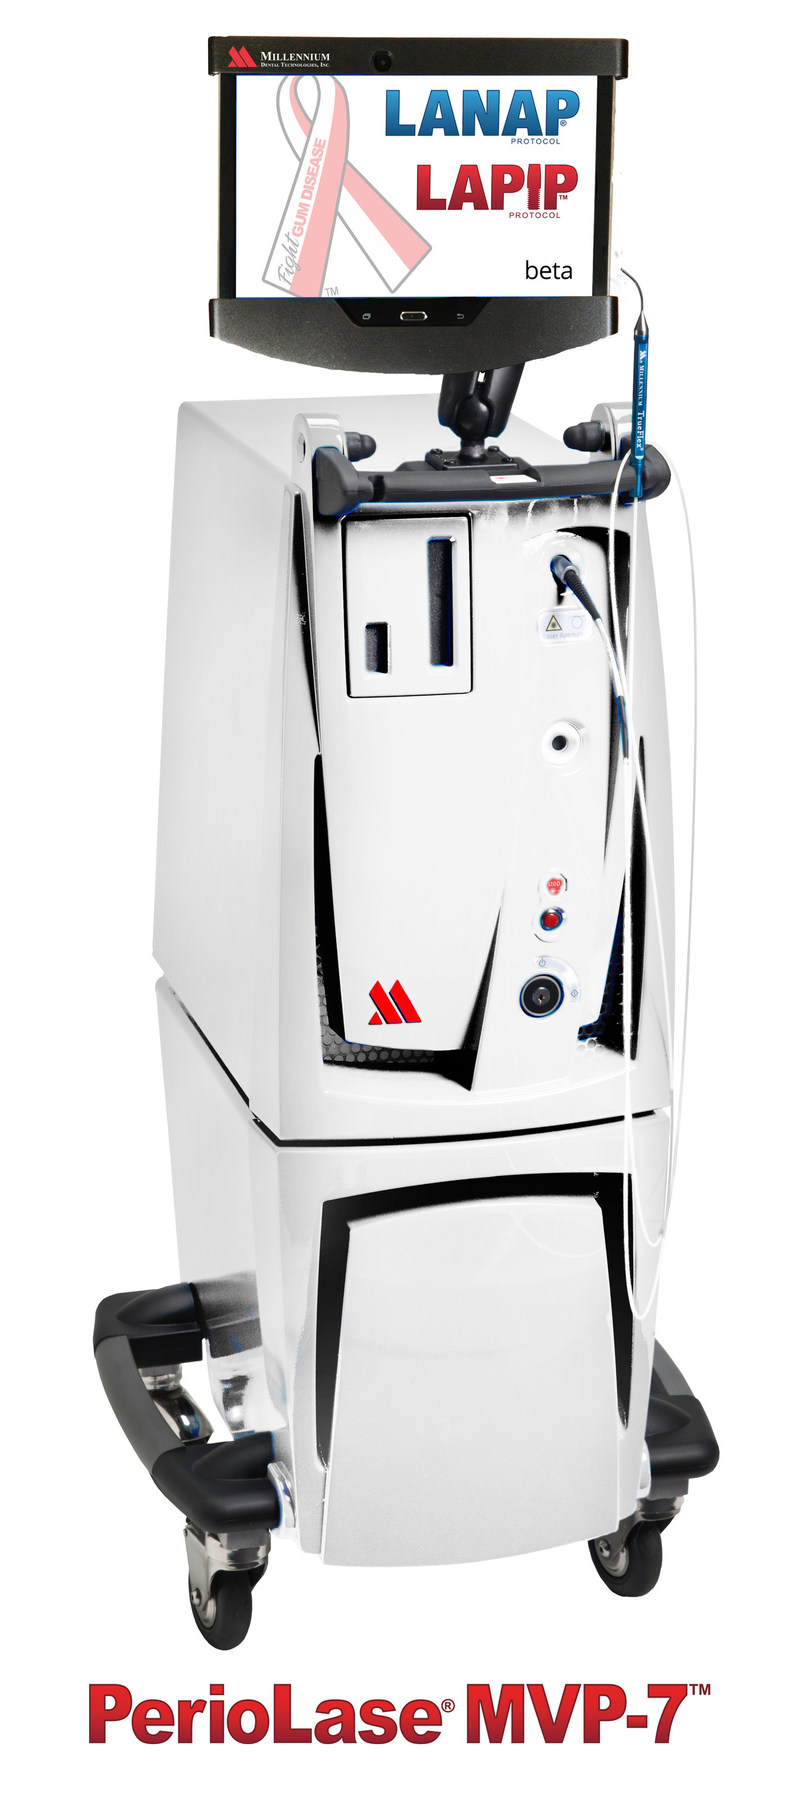 Award Winning PerioLase MVP-7 digital dental laser for the LANAP and LAPIP protocols.